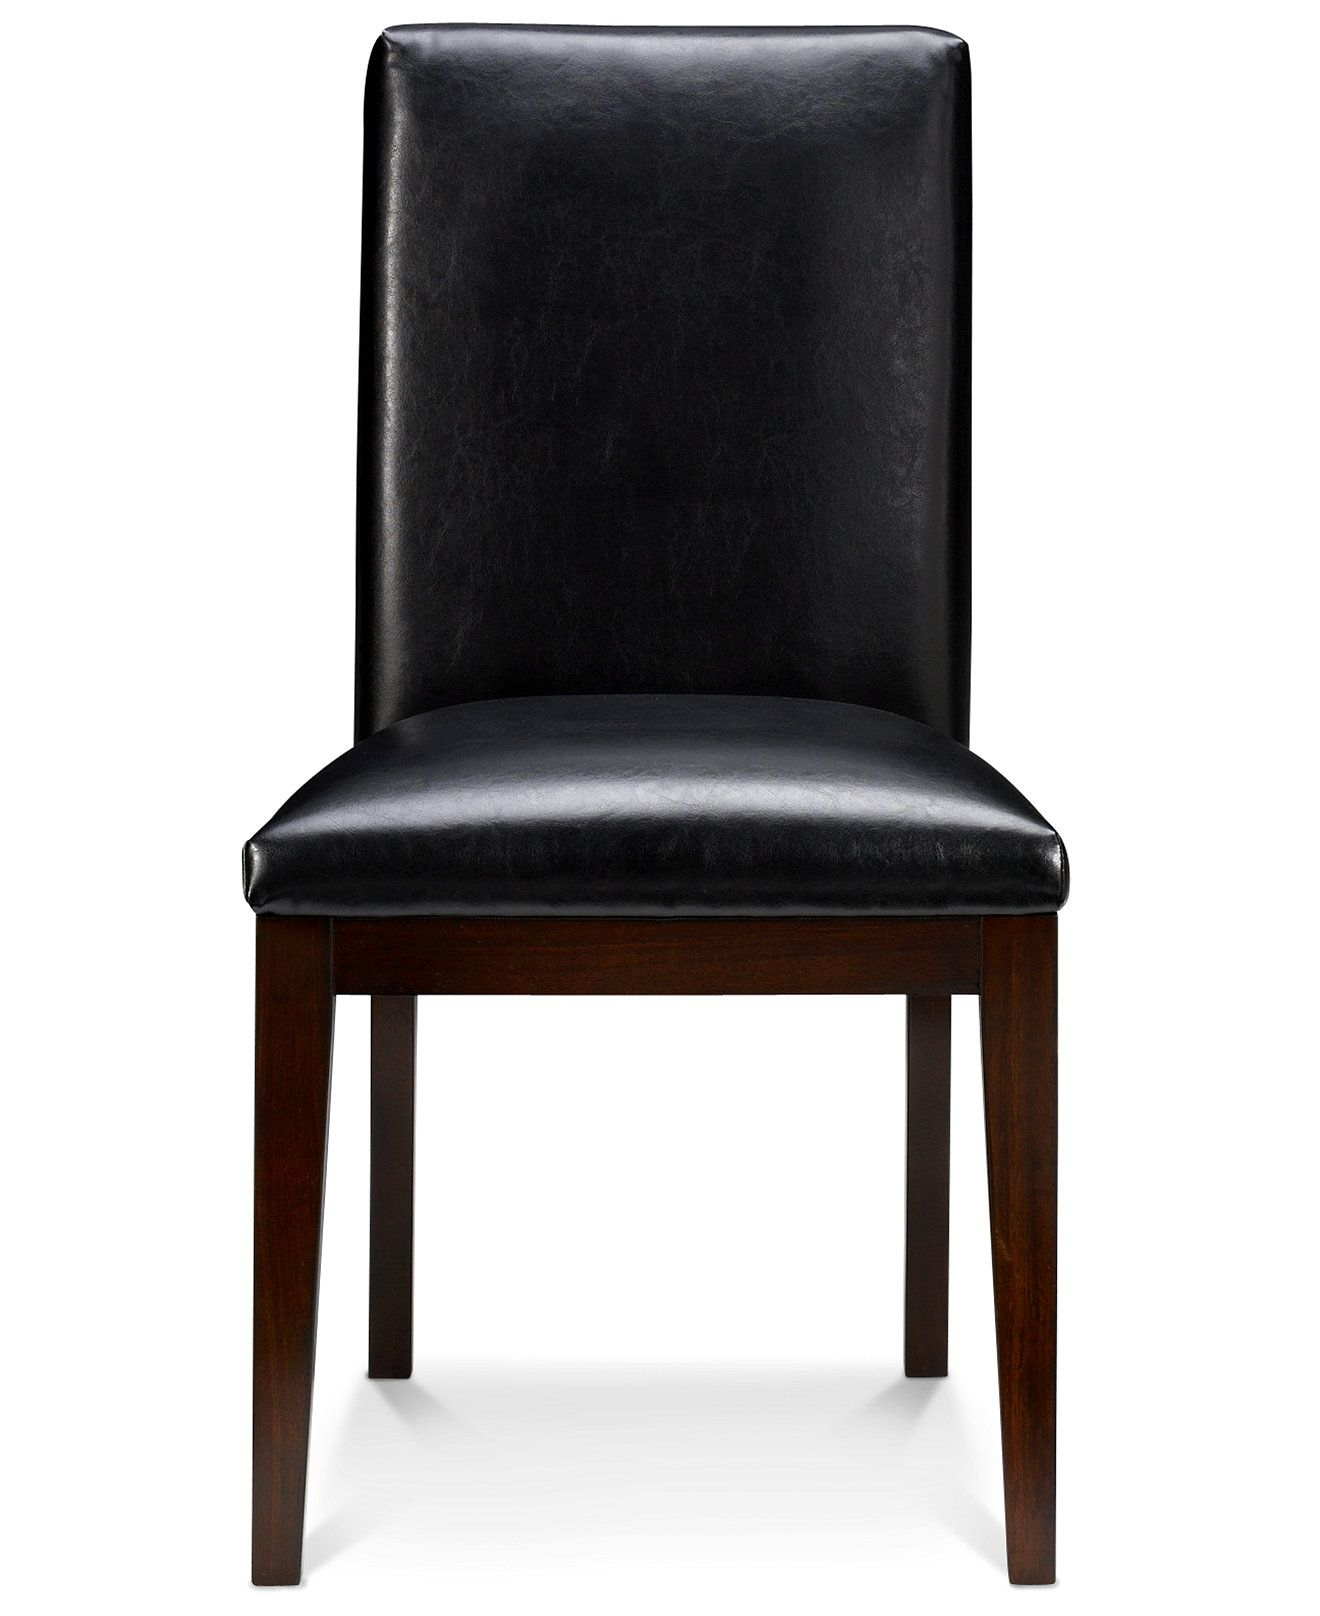 Sensational Corso Dining Chair Black Leather Dining Chairs Pabps2019 Chair Design Images Pabps2019Com